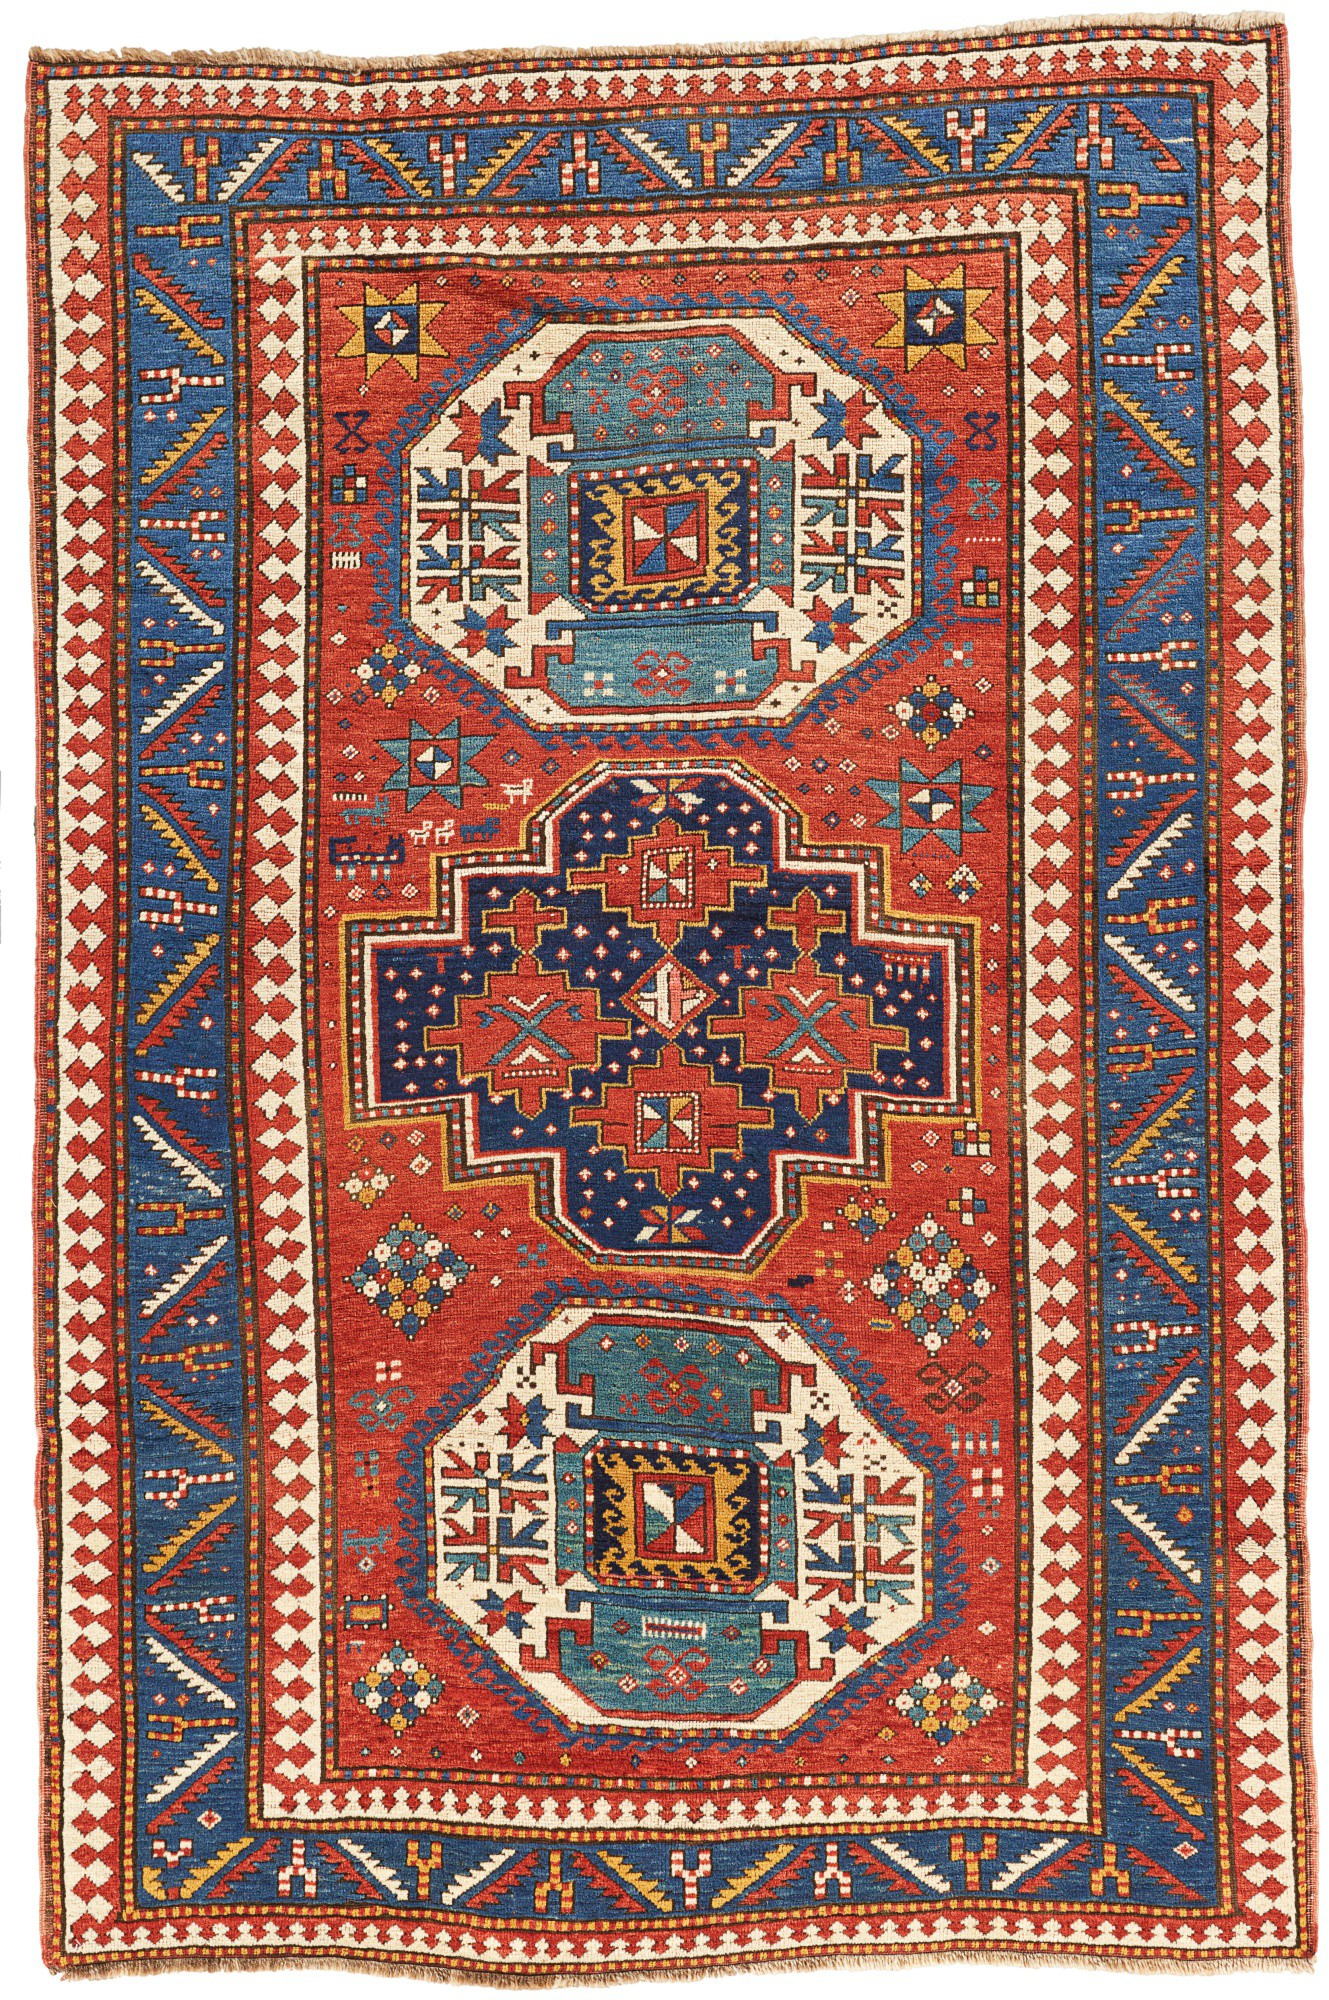 A KAZAK TRIPLE MEDALLION RUG, WEST CAUCASUS